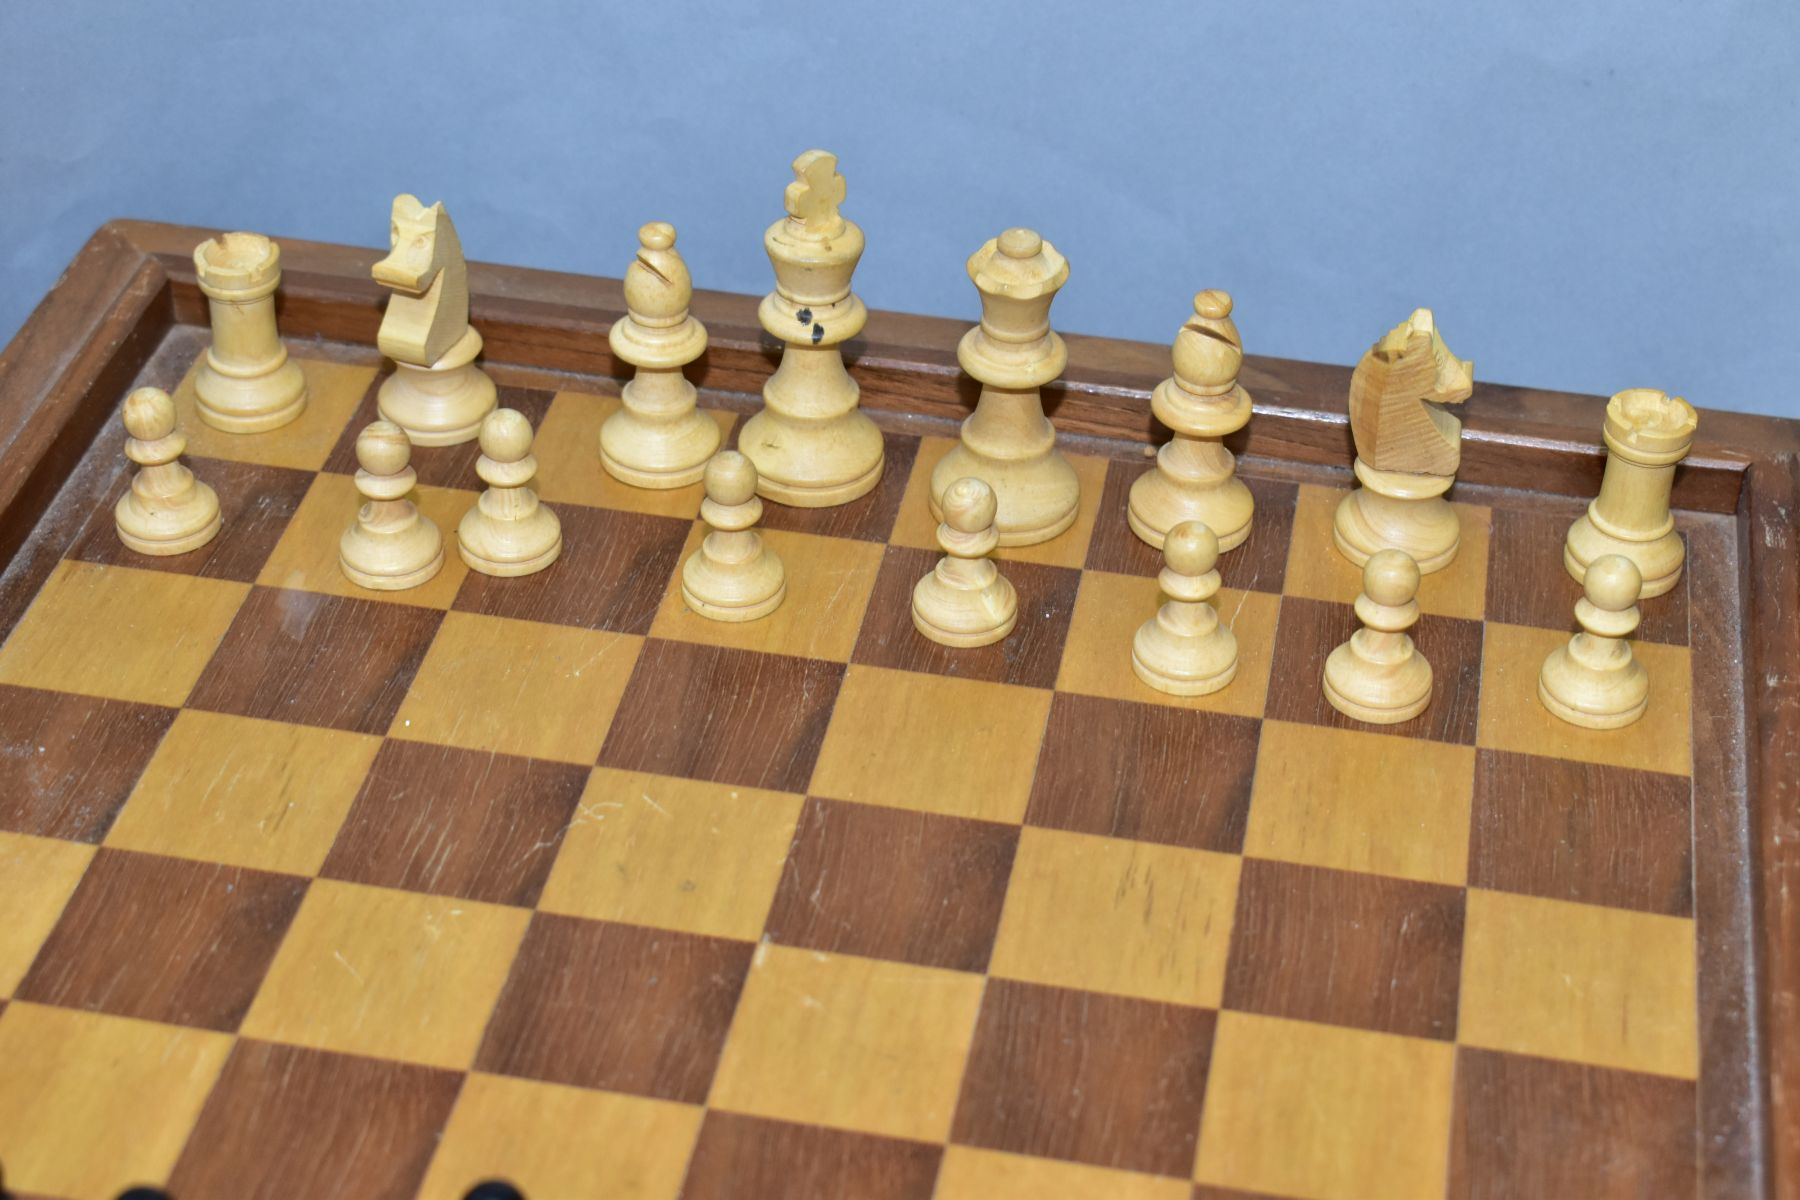 A MID 20TH CENTURY WOODEN CHESS BOARD AND CHESS PIECES, the board with lift off top opening to - Image 4 of 4